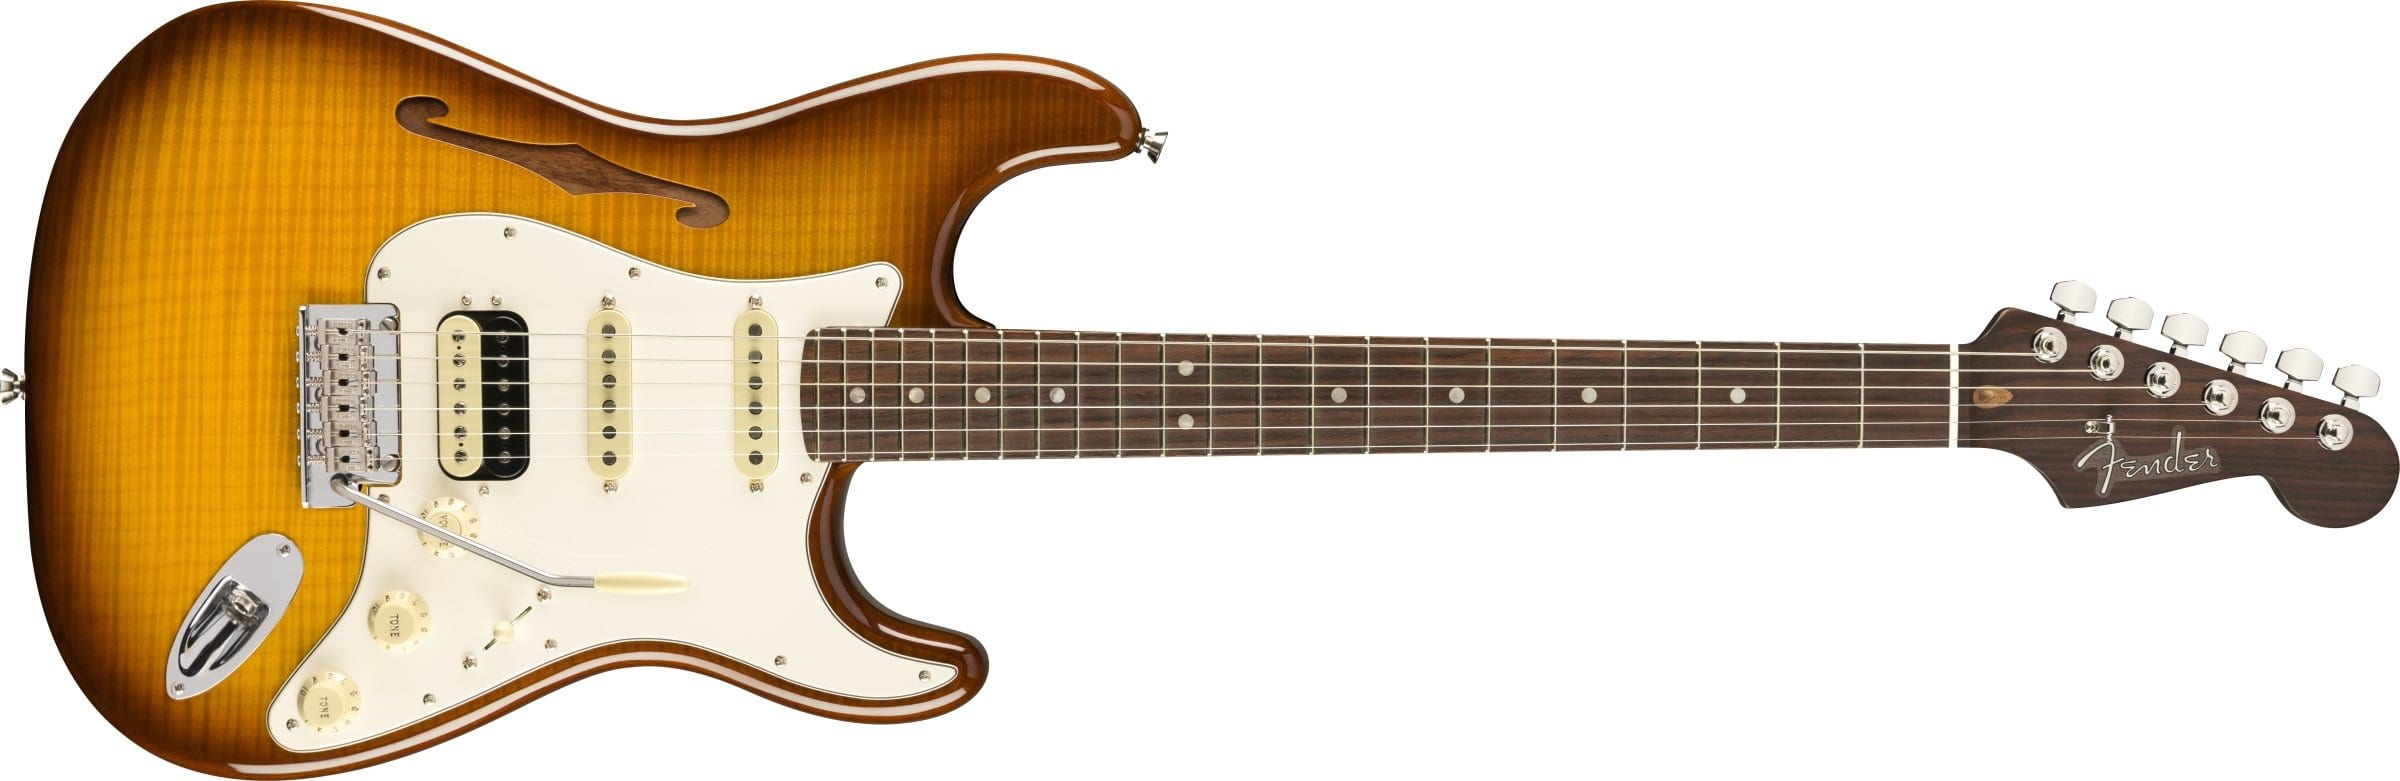 Fender Rarities Flame Maple Top Stratocaster front